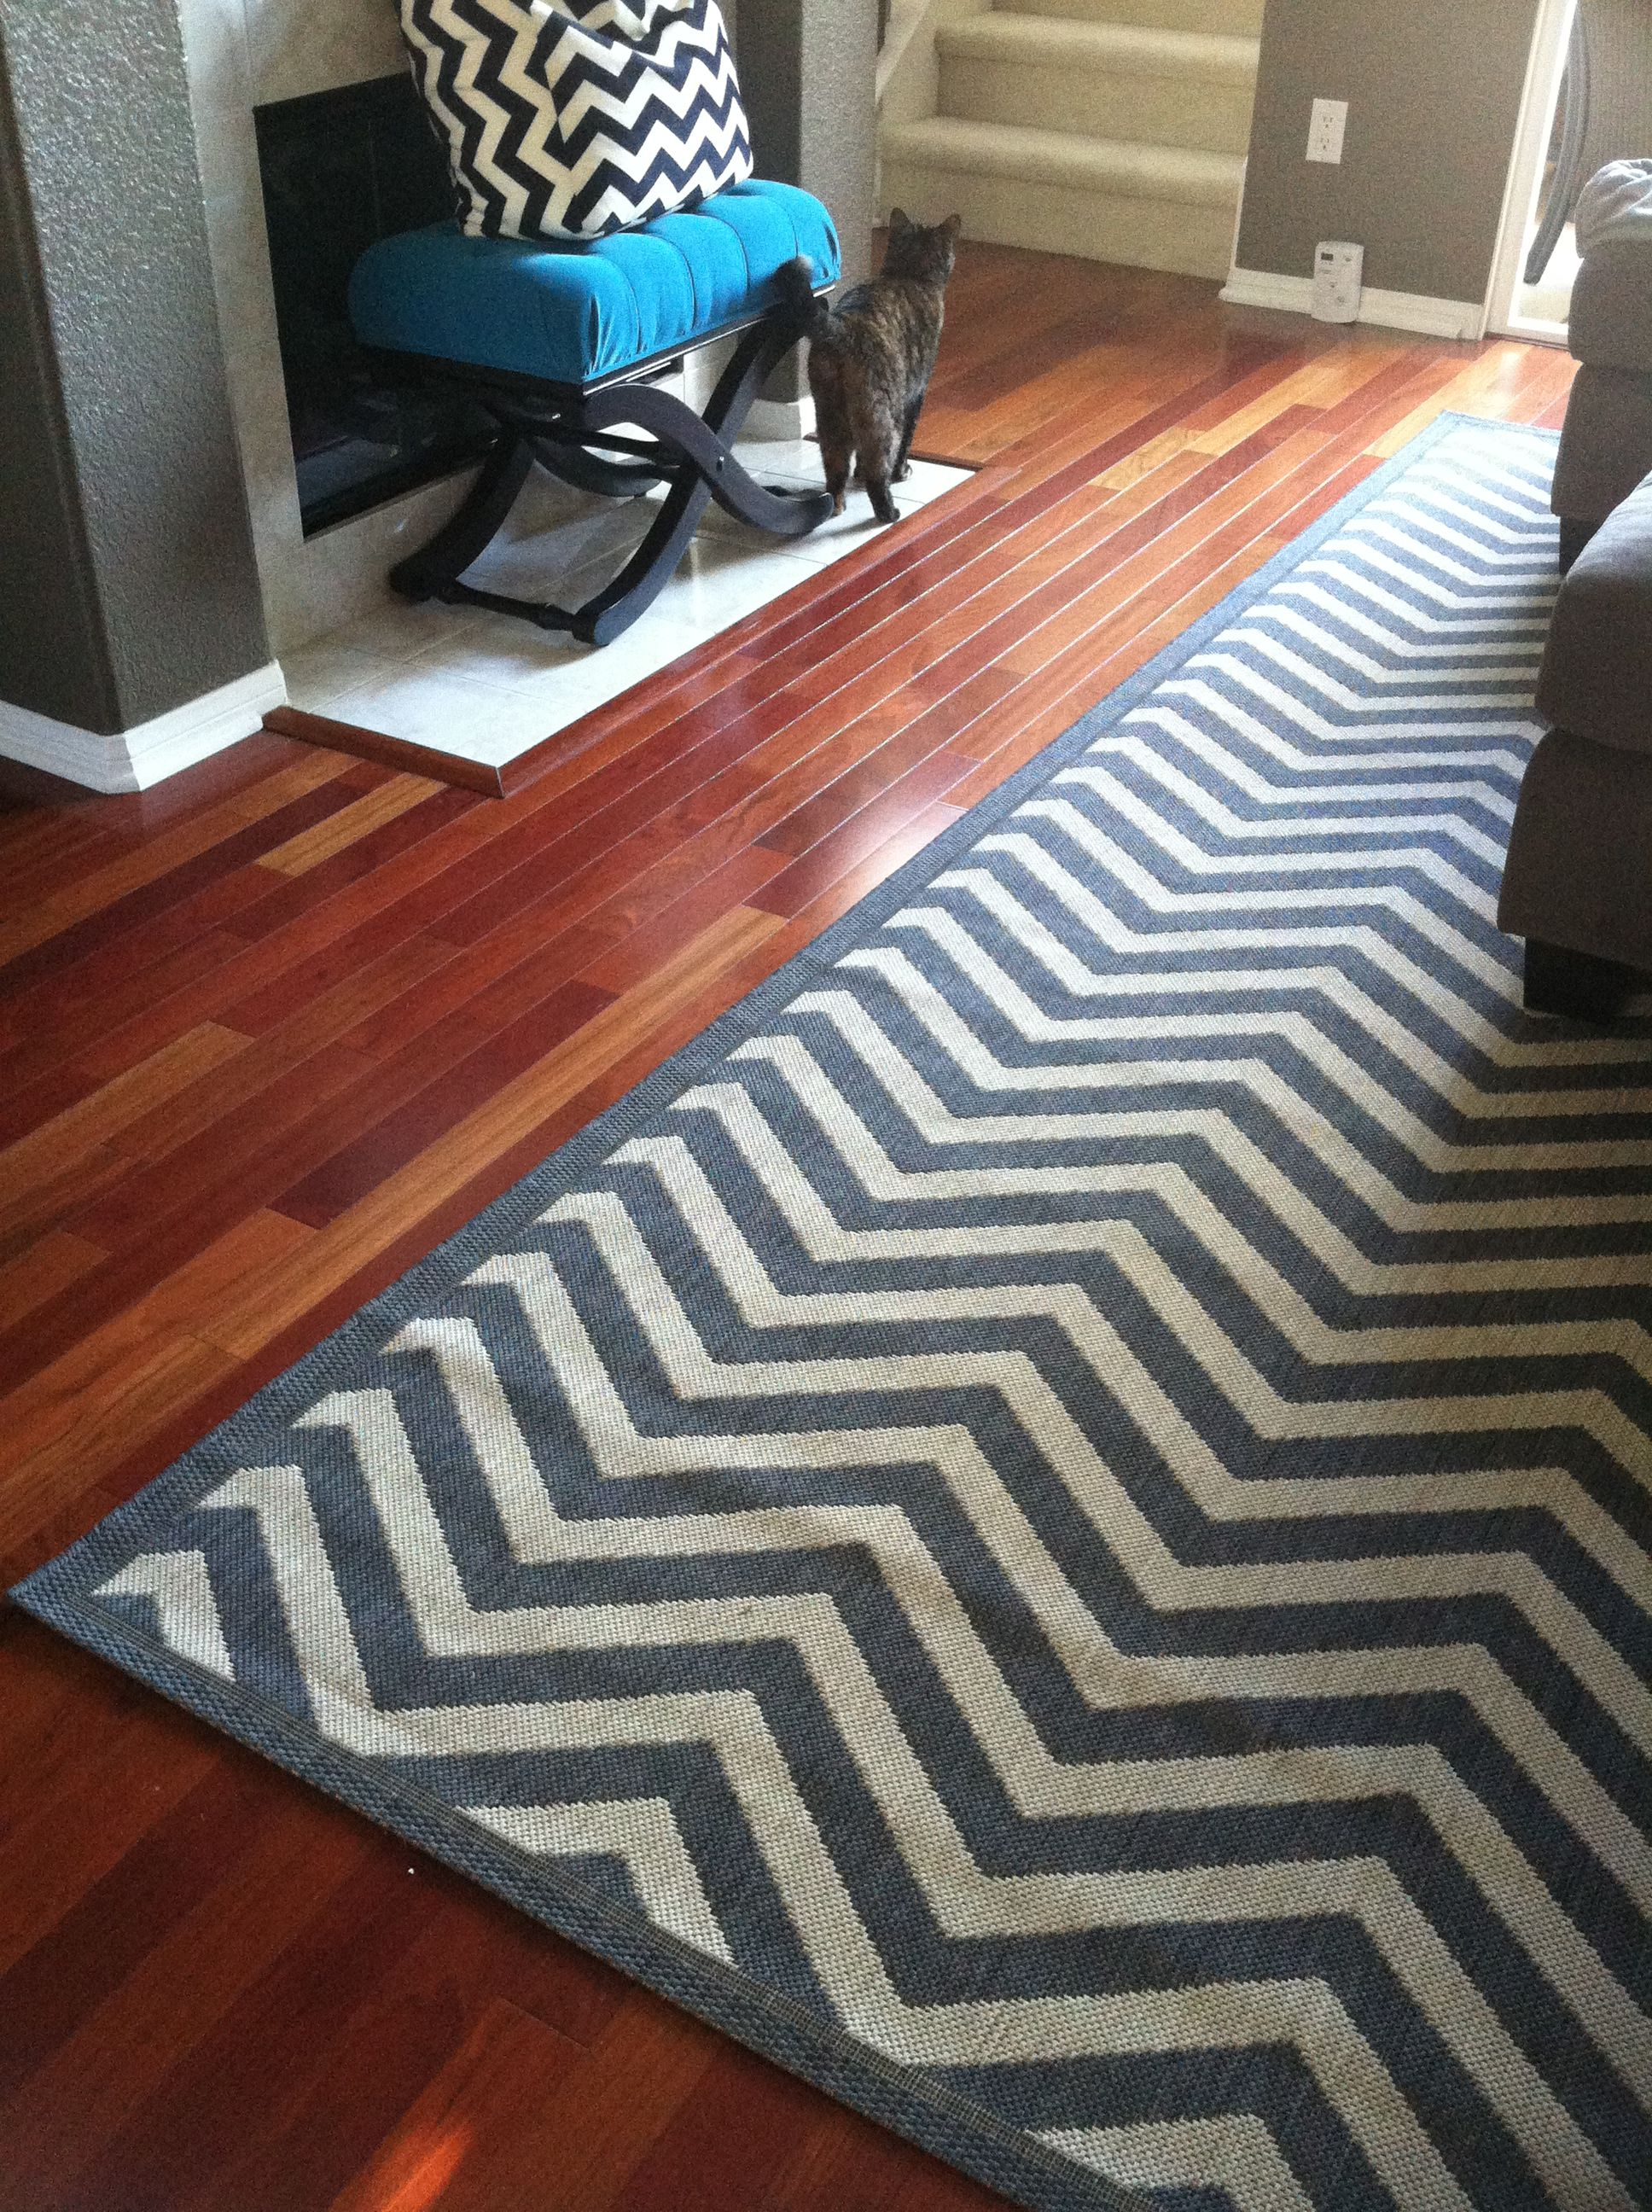 Ballard Designs Gray Chevron Rug. Just Bought These For My New Mudroom.